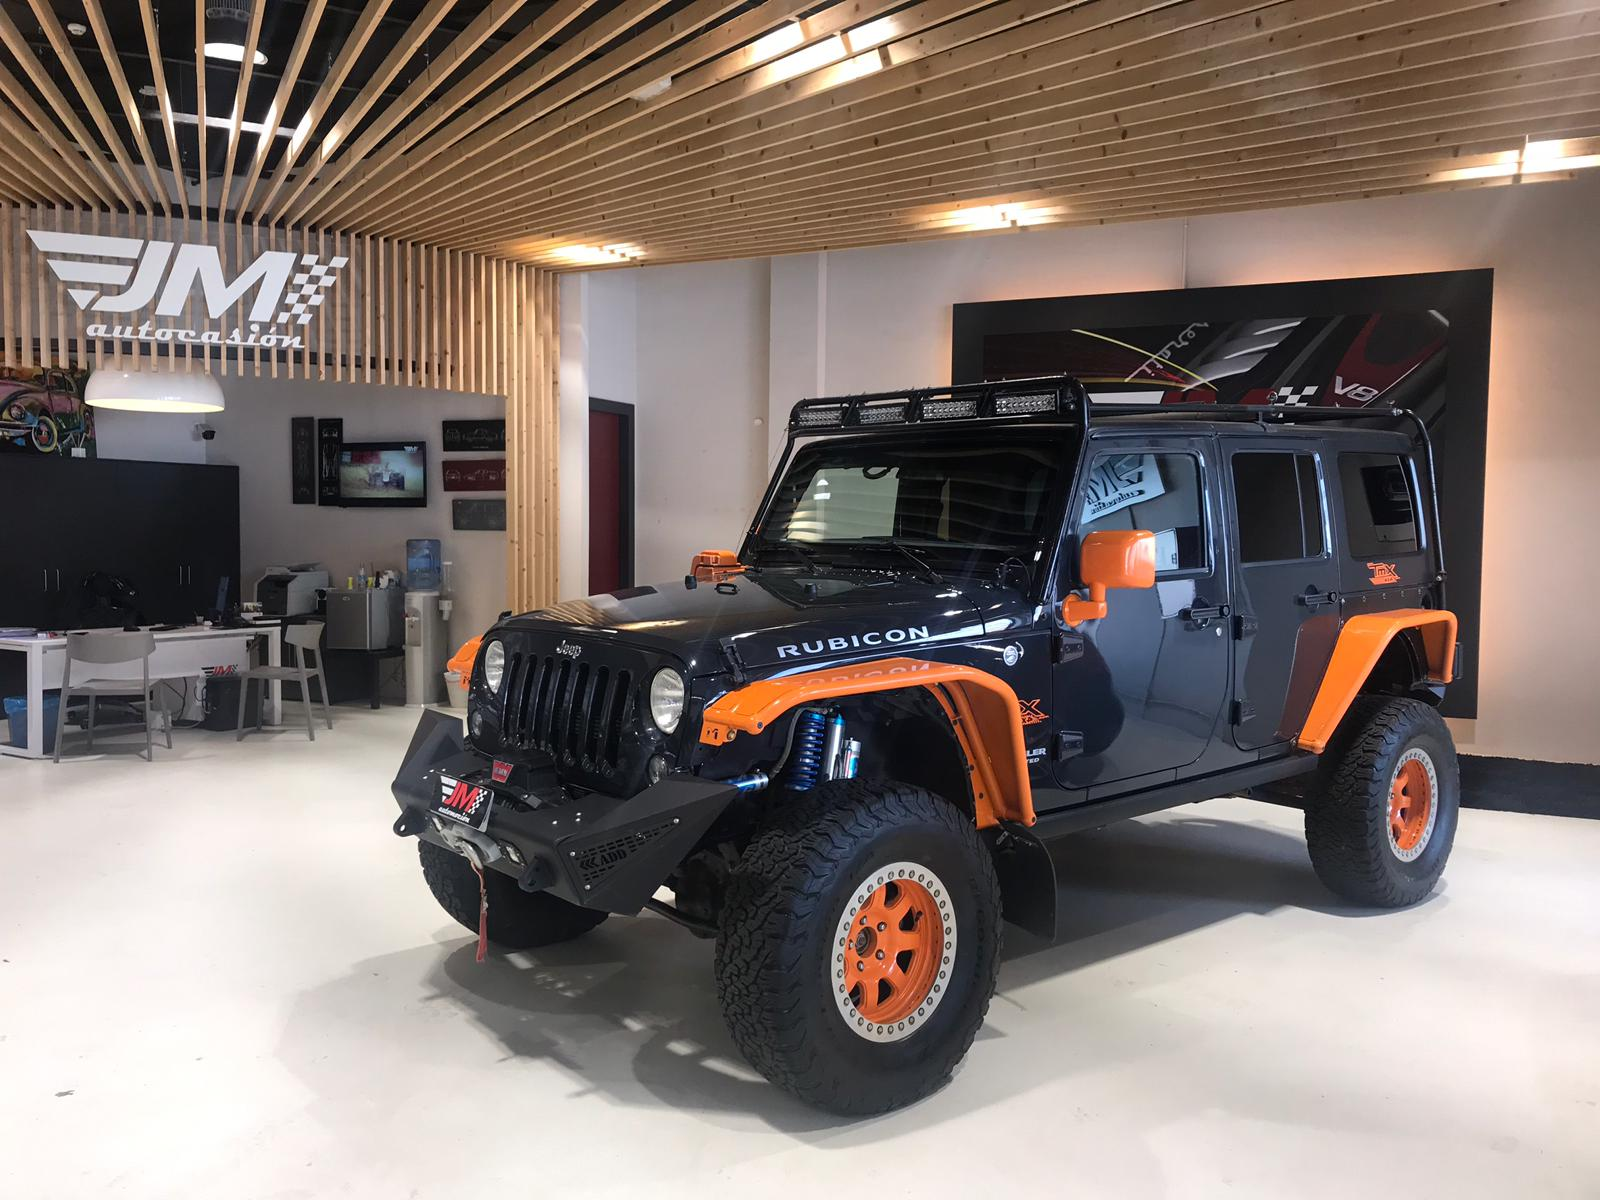 Jeep Wrangler Unlimited 3.6 Rubicon Aut. PRE.TMX